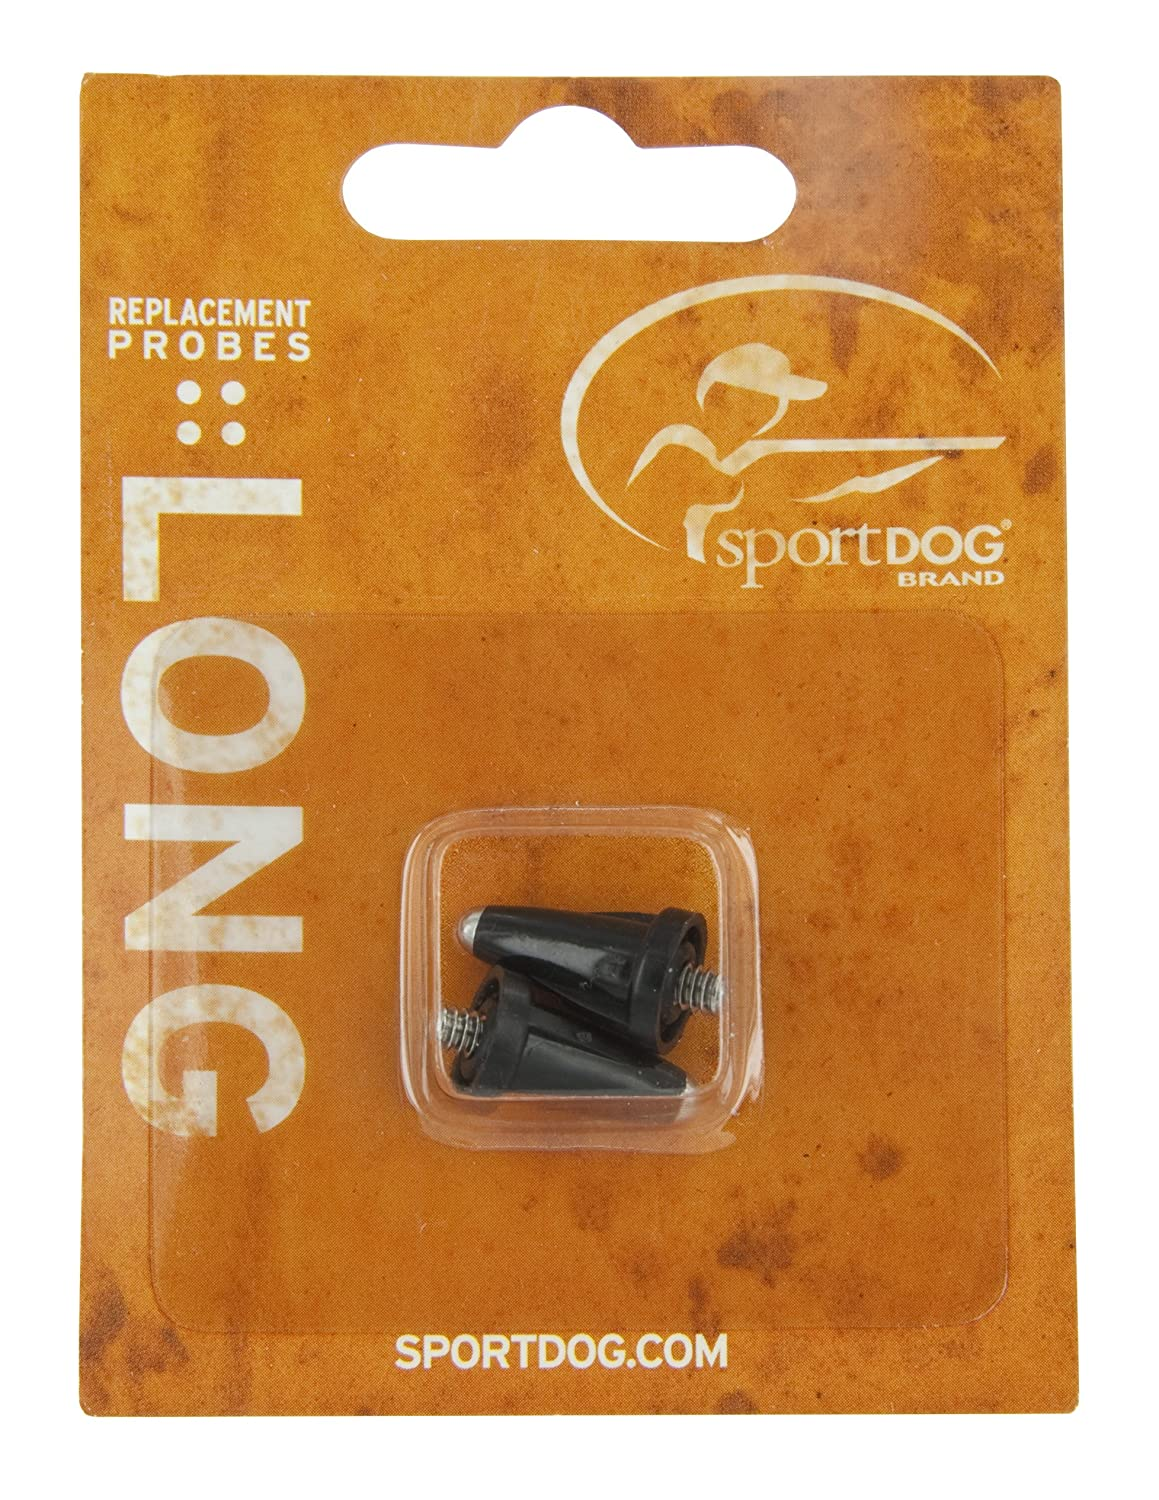 SportDOG Long Replacement Probes for SportDOG Remote Trainers, SAC00-12570 SportDOG Brand